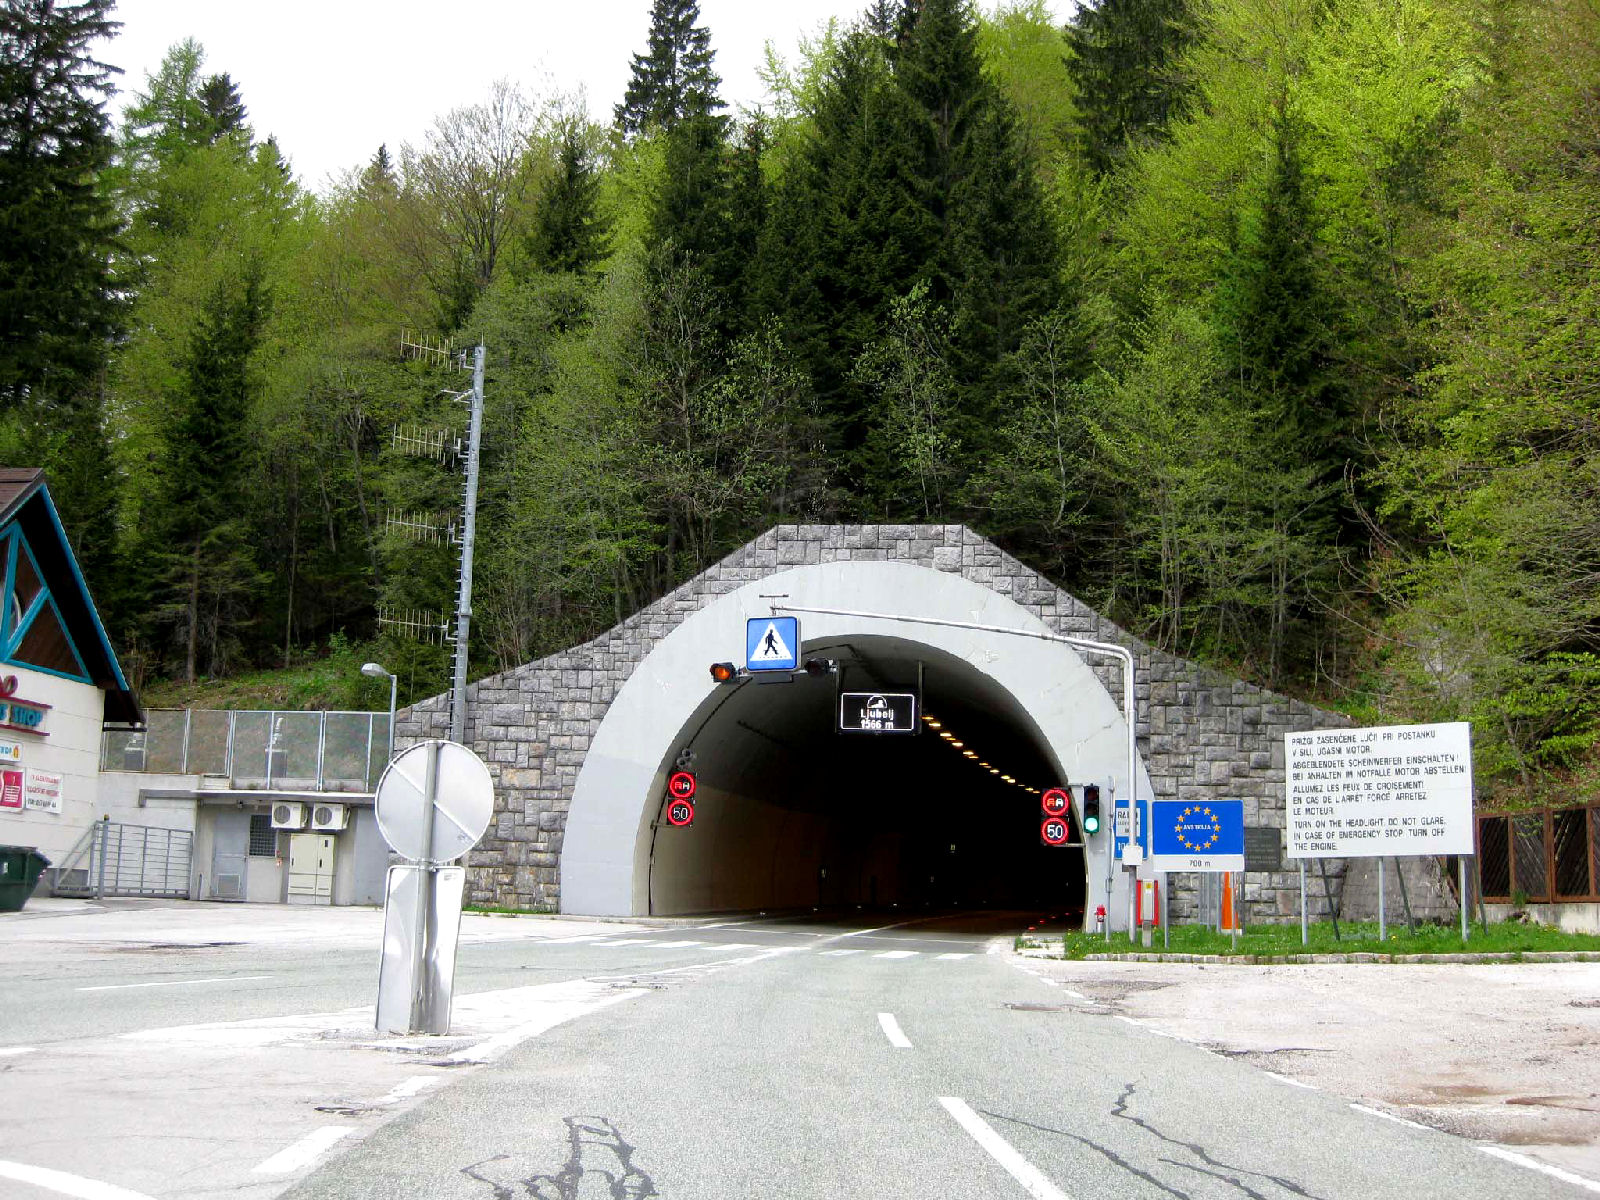 The 1566 meters long Loibl Tunnel connecting Slovenia and Austria